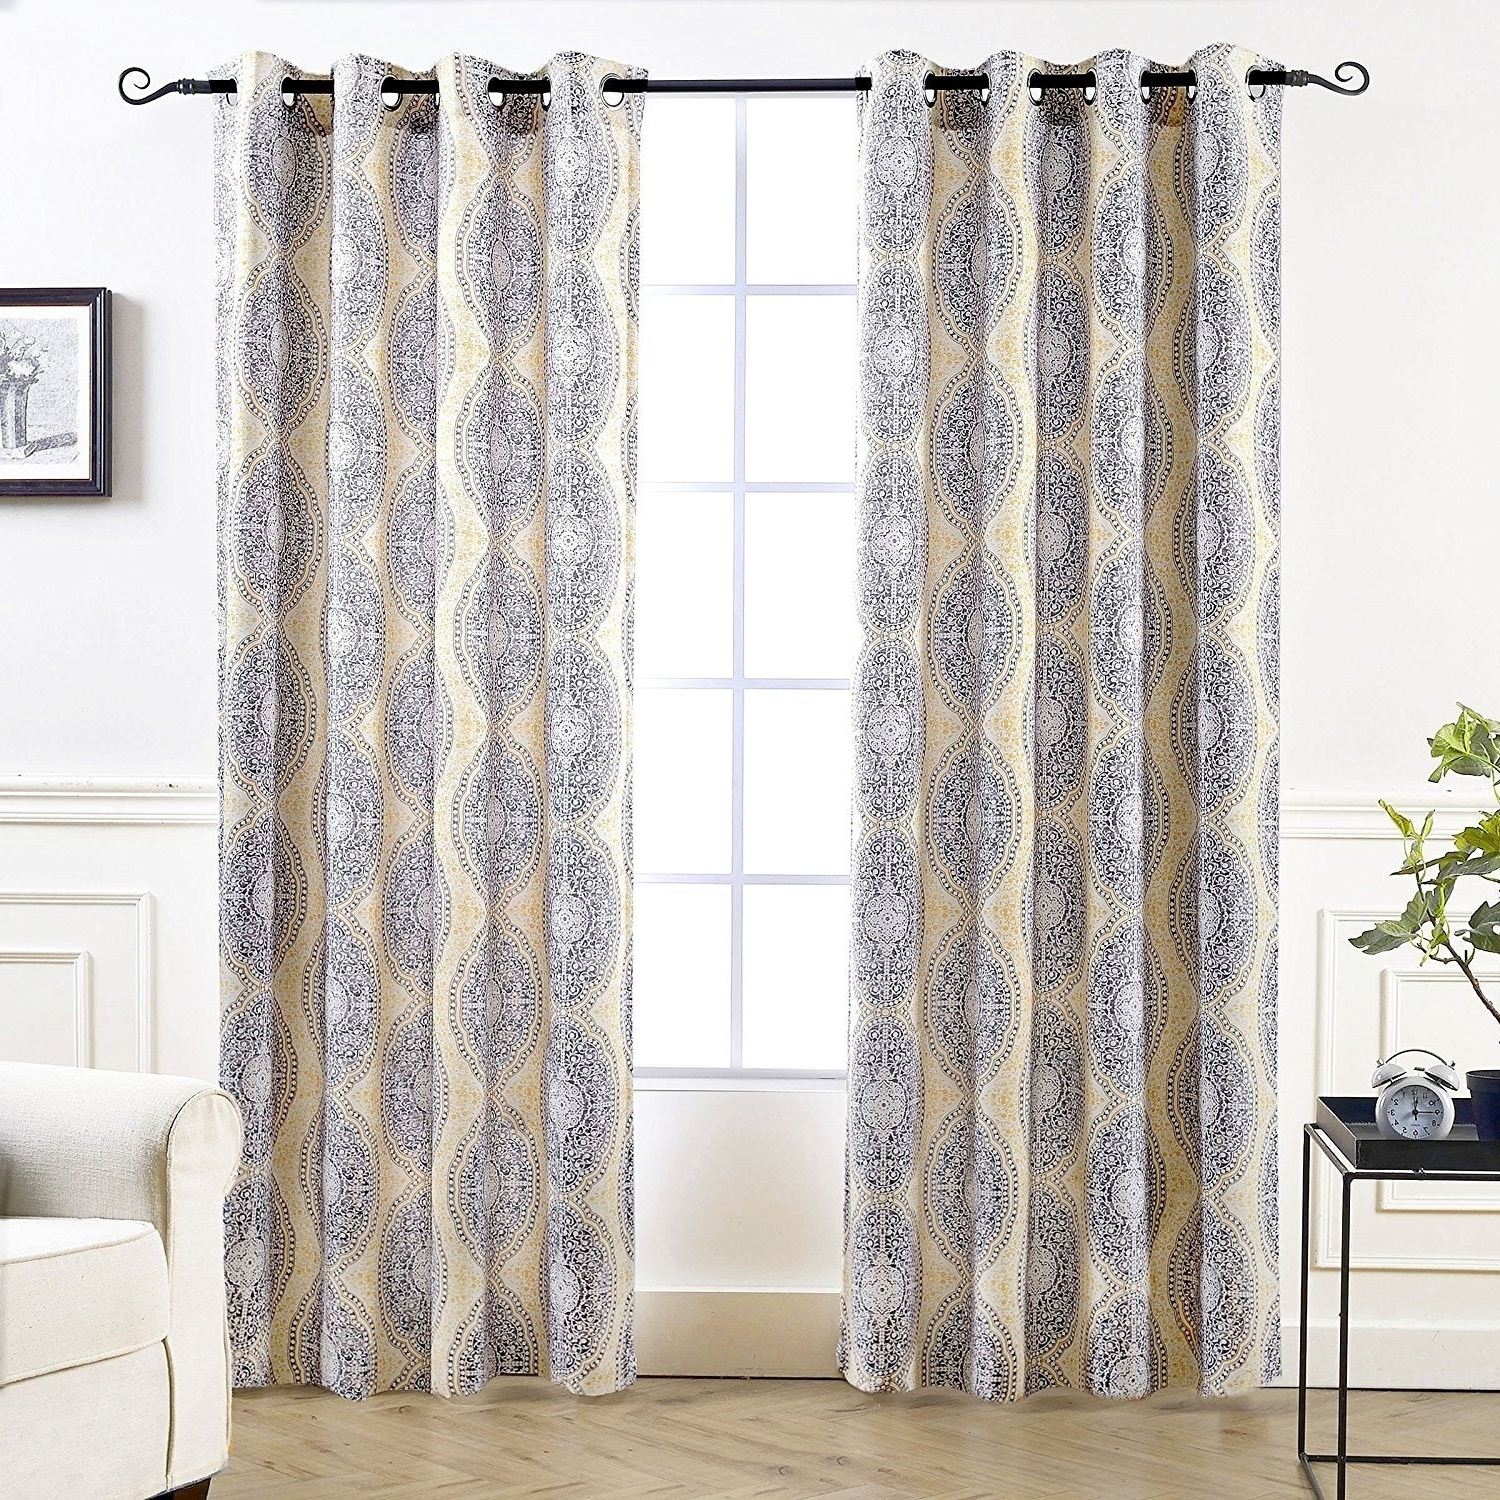 Pastel Damask Printed Room Darkening Kitchen Tiers In Best And Newest Driftaway Adrianne Pastel Damask Printed Room Darkening Grommet Window Curtain Panel Pair (View 6 of 20)